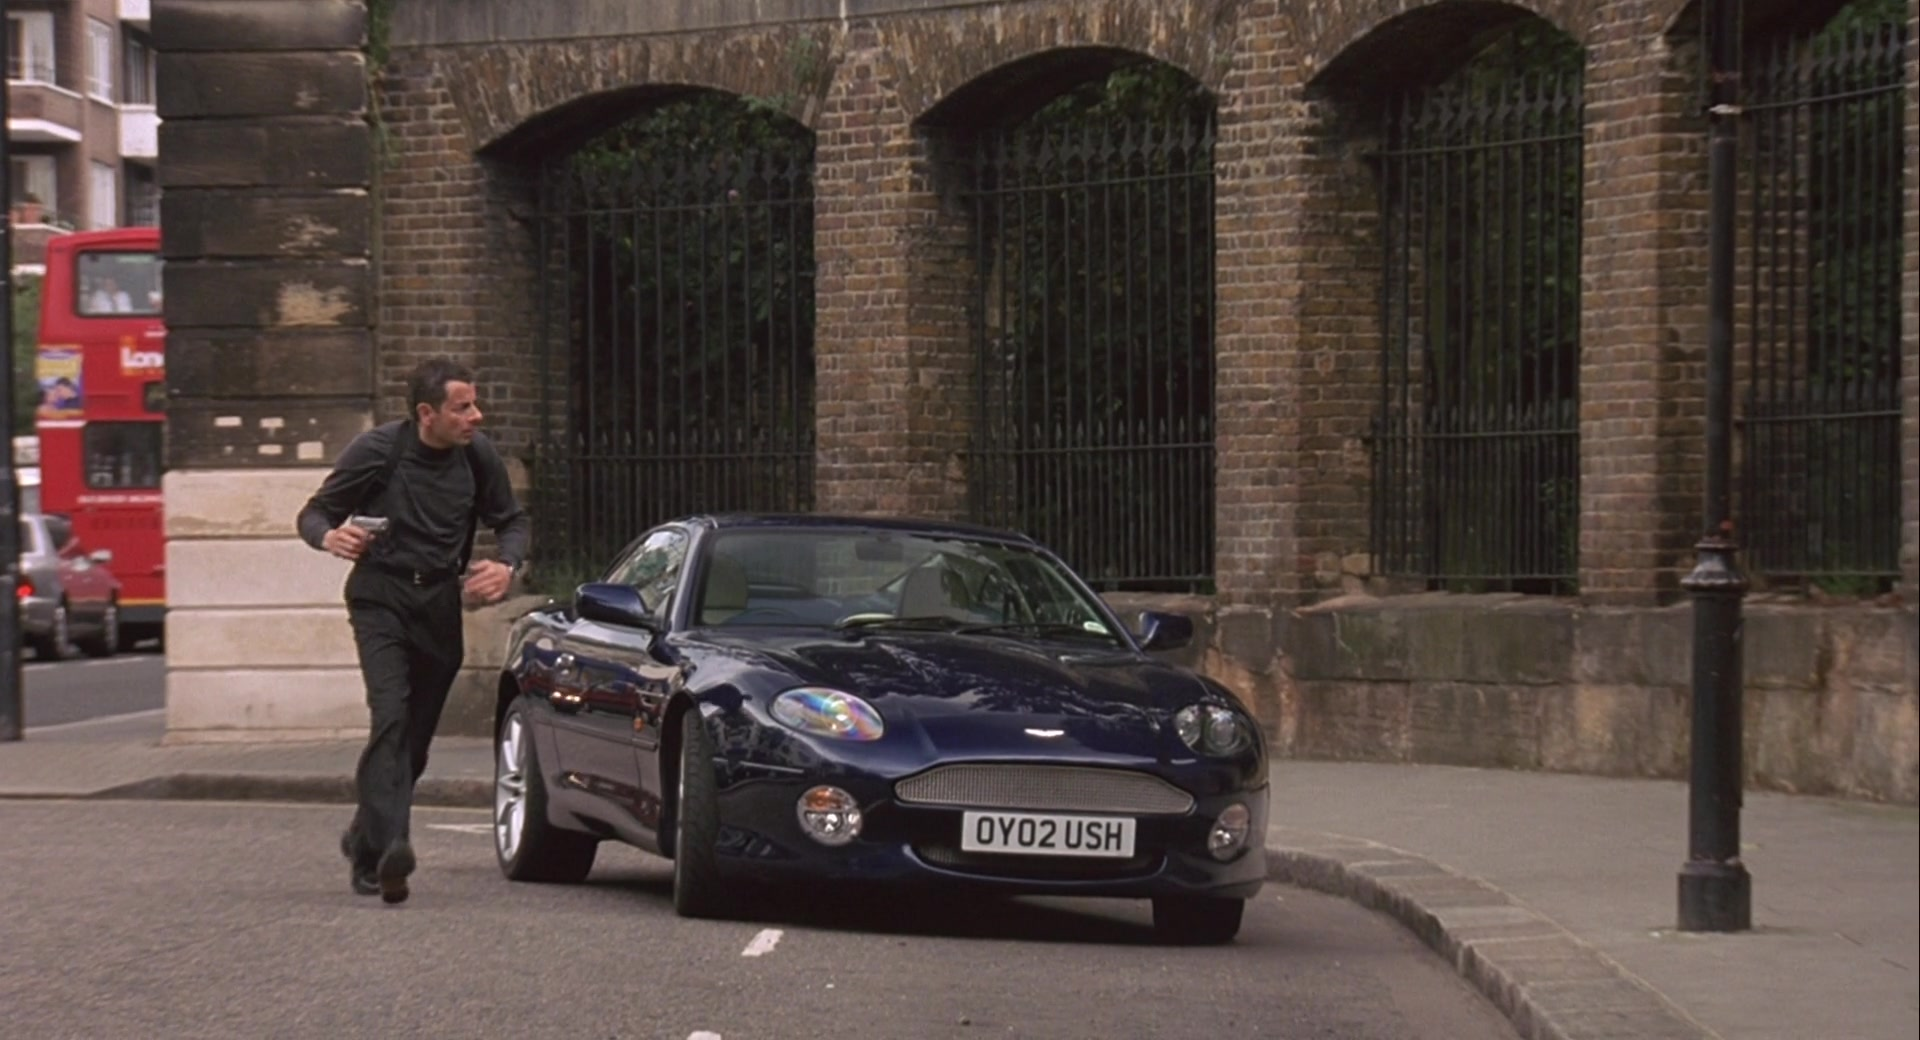 Aston Martin Db7 Vantage Sports Car Used By Rowan Atkinson In Johnny English 2003